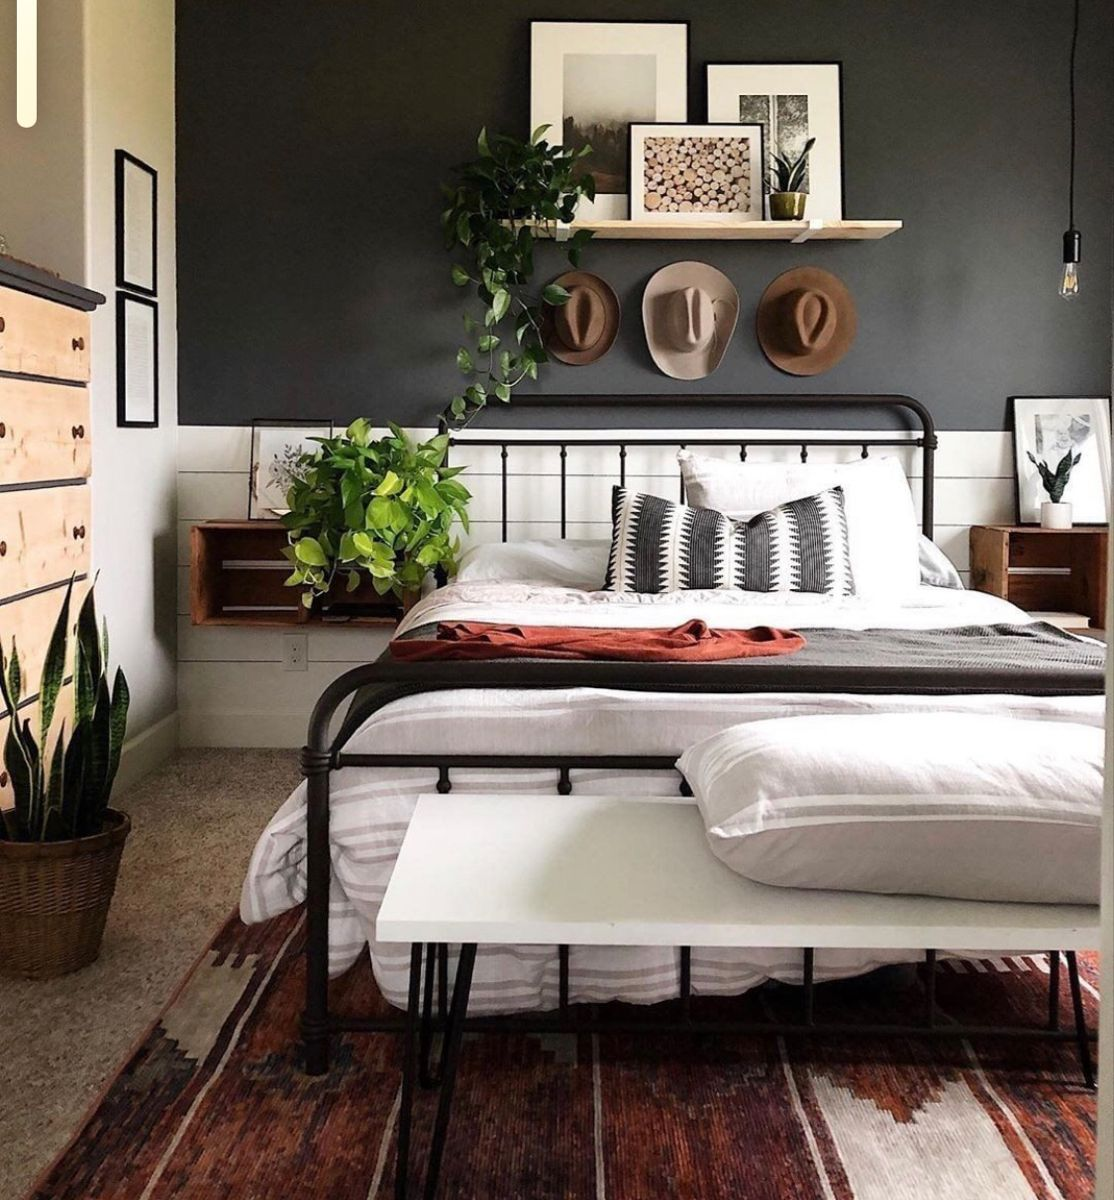 Pin by Claire Knight on home. Bedroom redesign